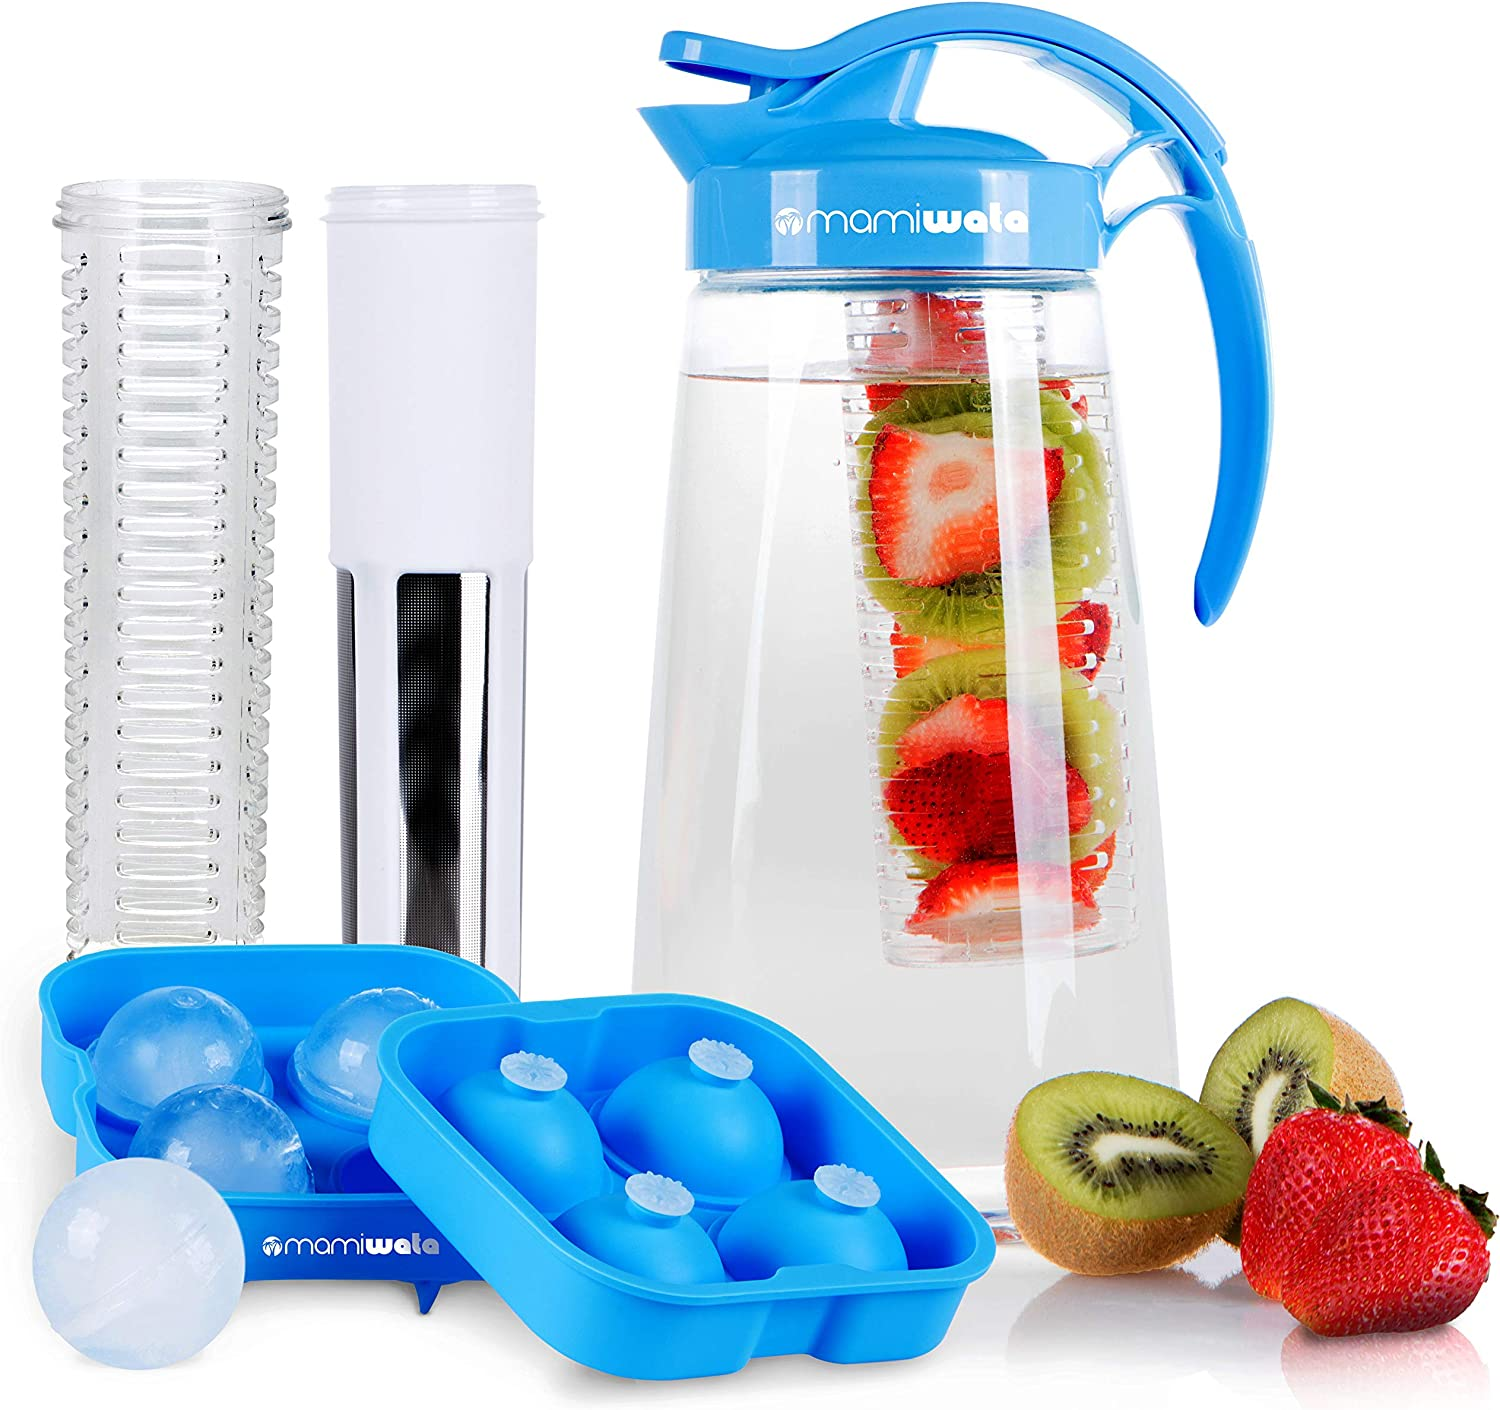 Fruit & Tea Infusion Water Pitcher - The PERFECT Birthday Gift - Free Ice Ball Maker - Free Infused Water Recipe Booklet - Includes Shatterproof Jug, Fruit Infuser, and Tea Infuser